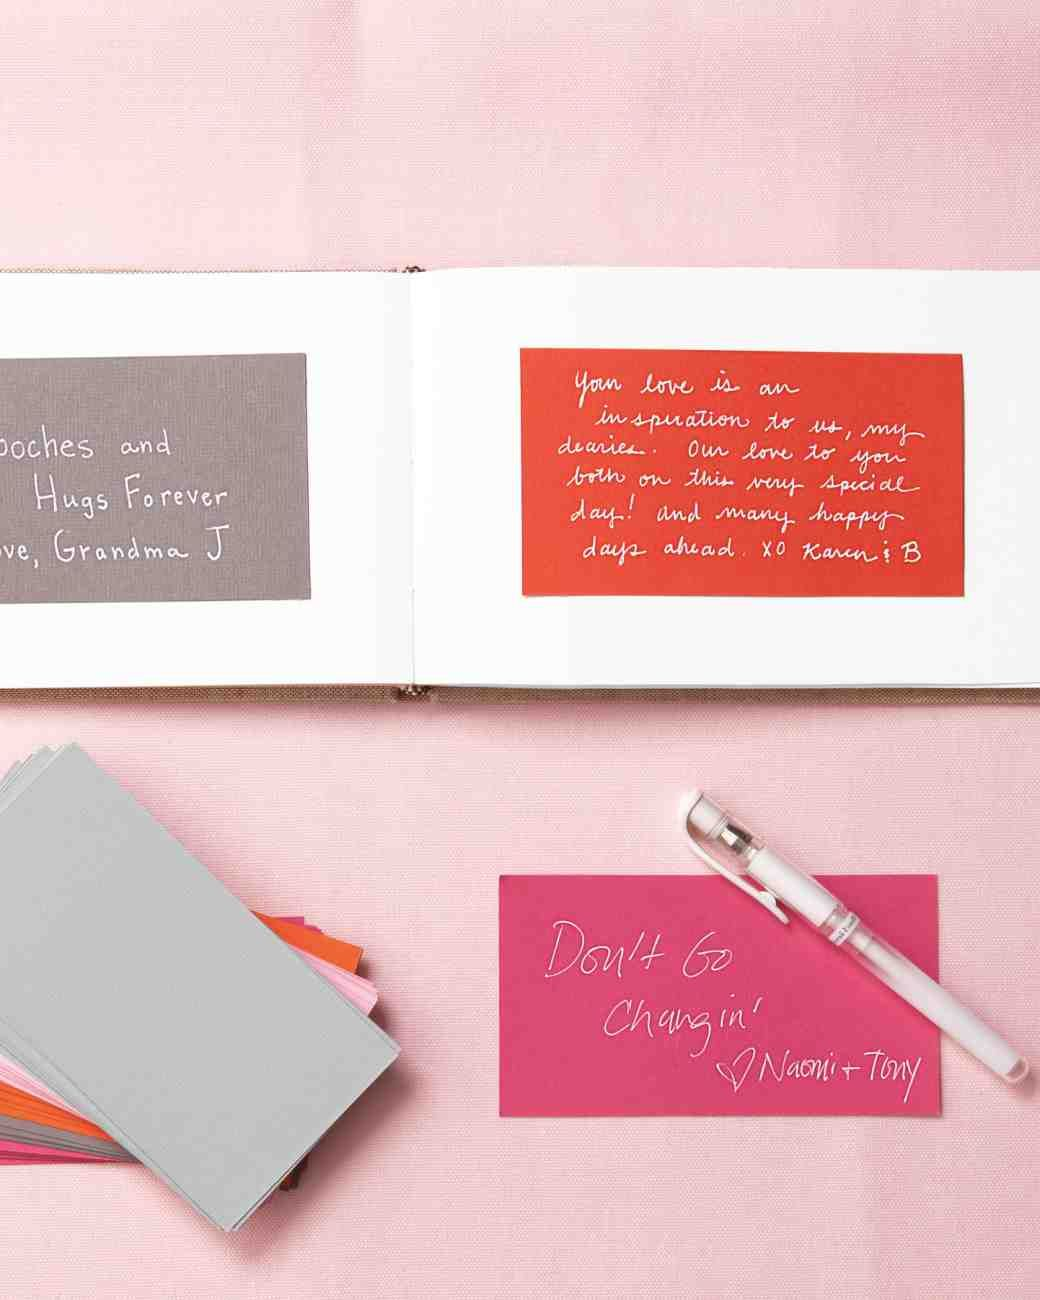 17 Super Creative DIY Guest Book Ideas for Your Wedding | Reception ...